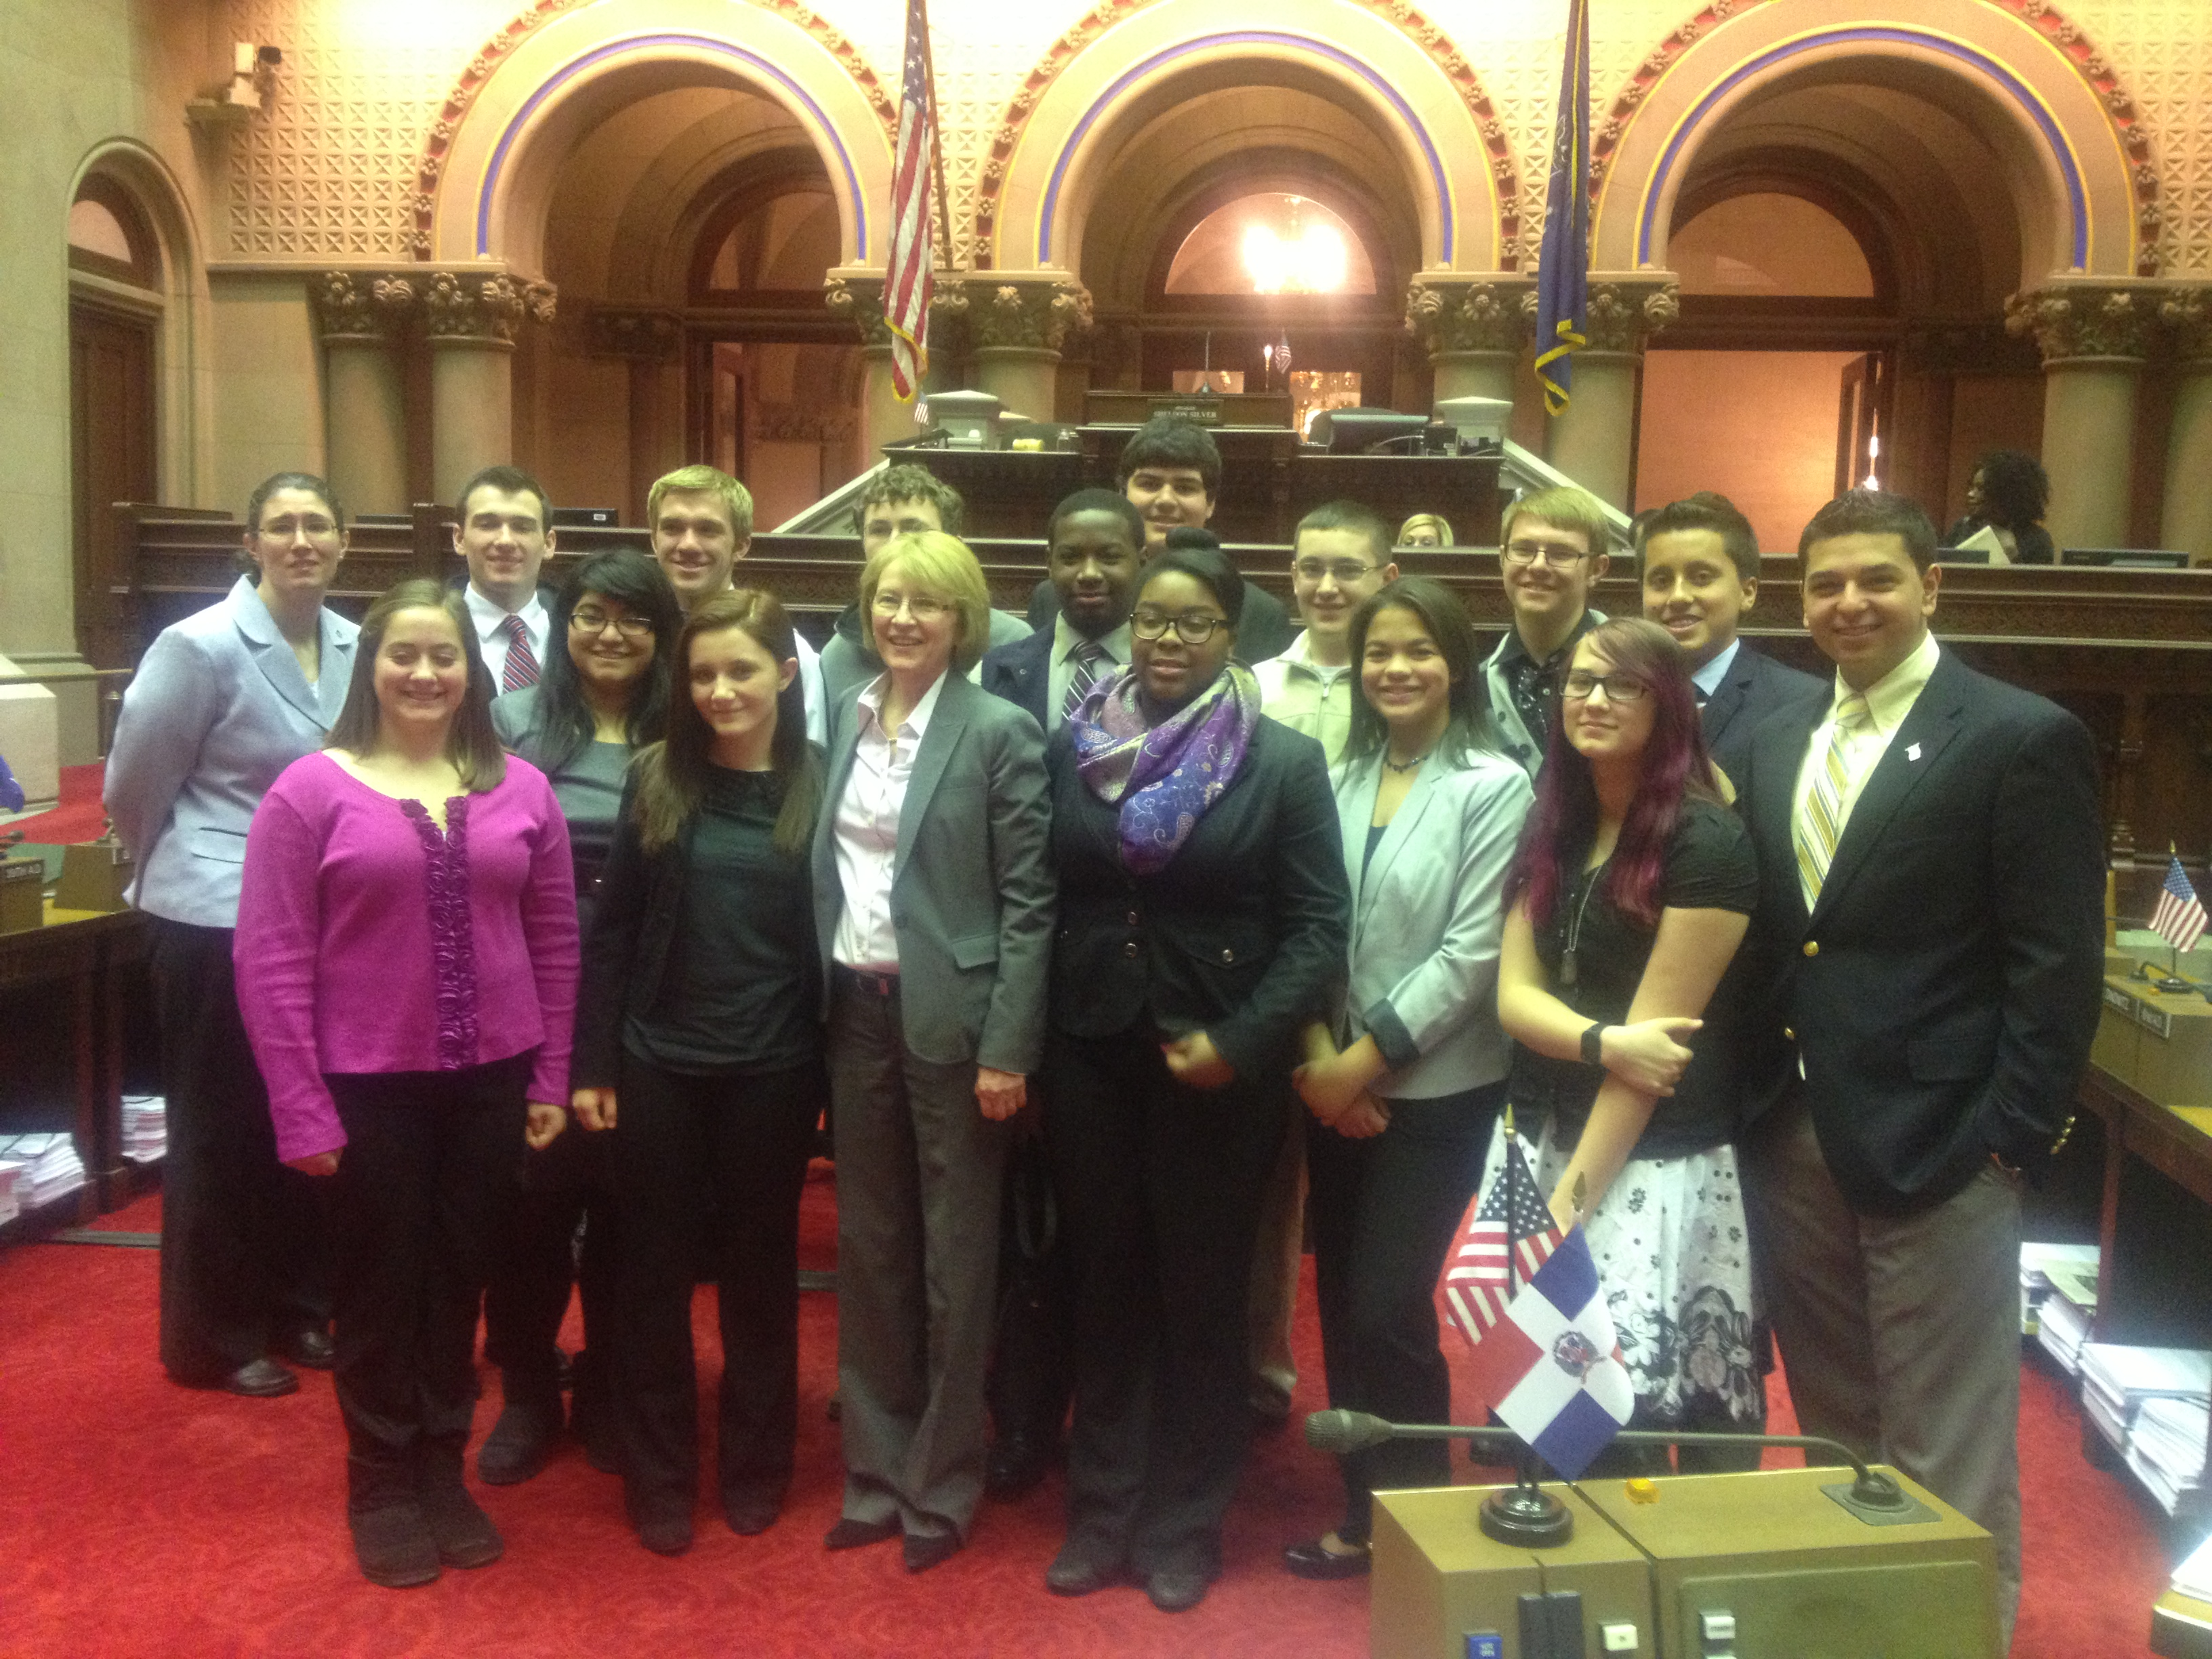 Aileen was visited by members of the Orange County Youth Bureau in Albany.